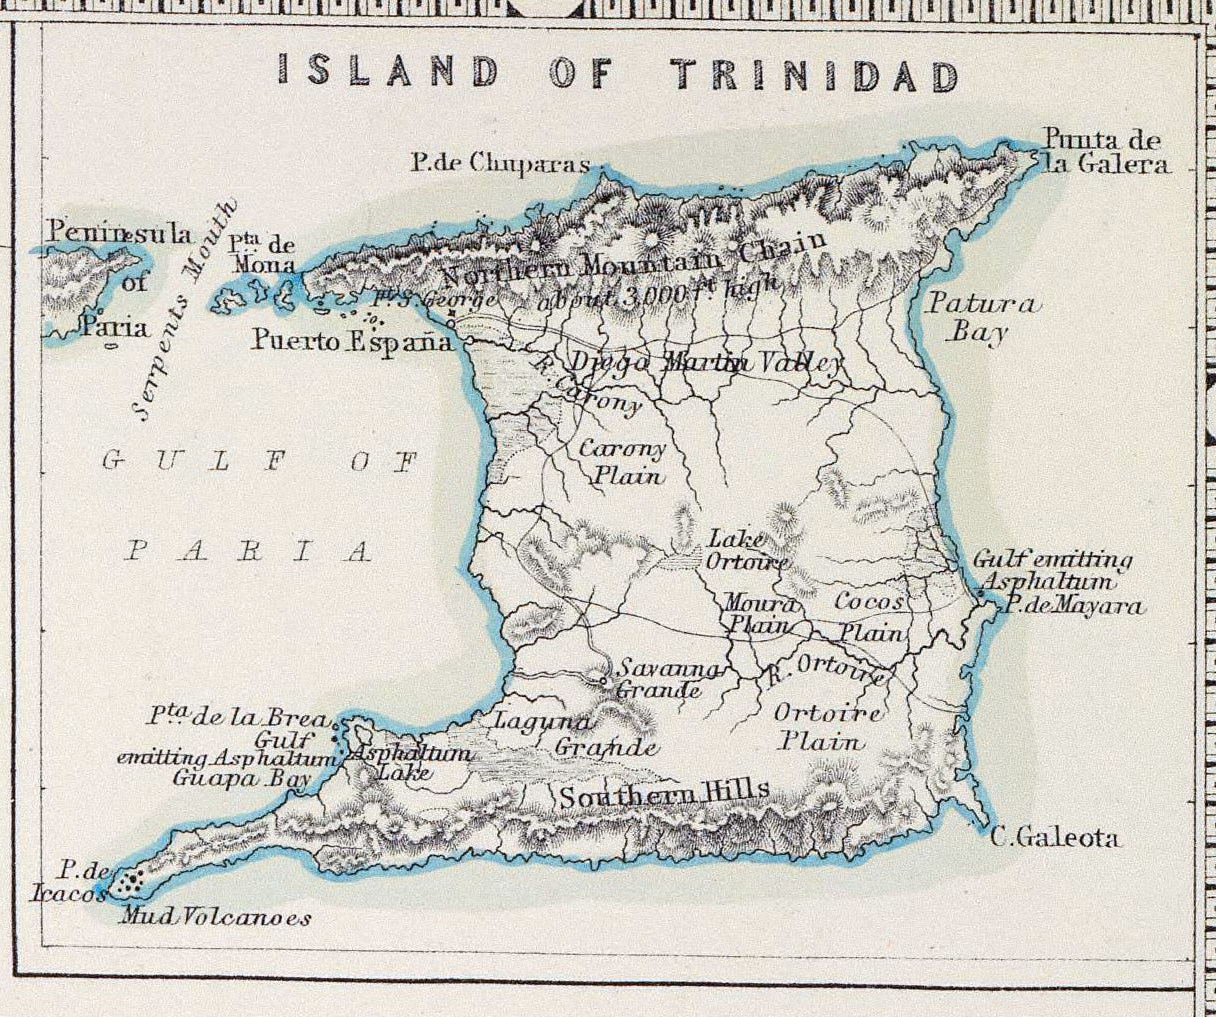 Caribbean Trinidad and Tobago